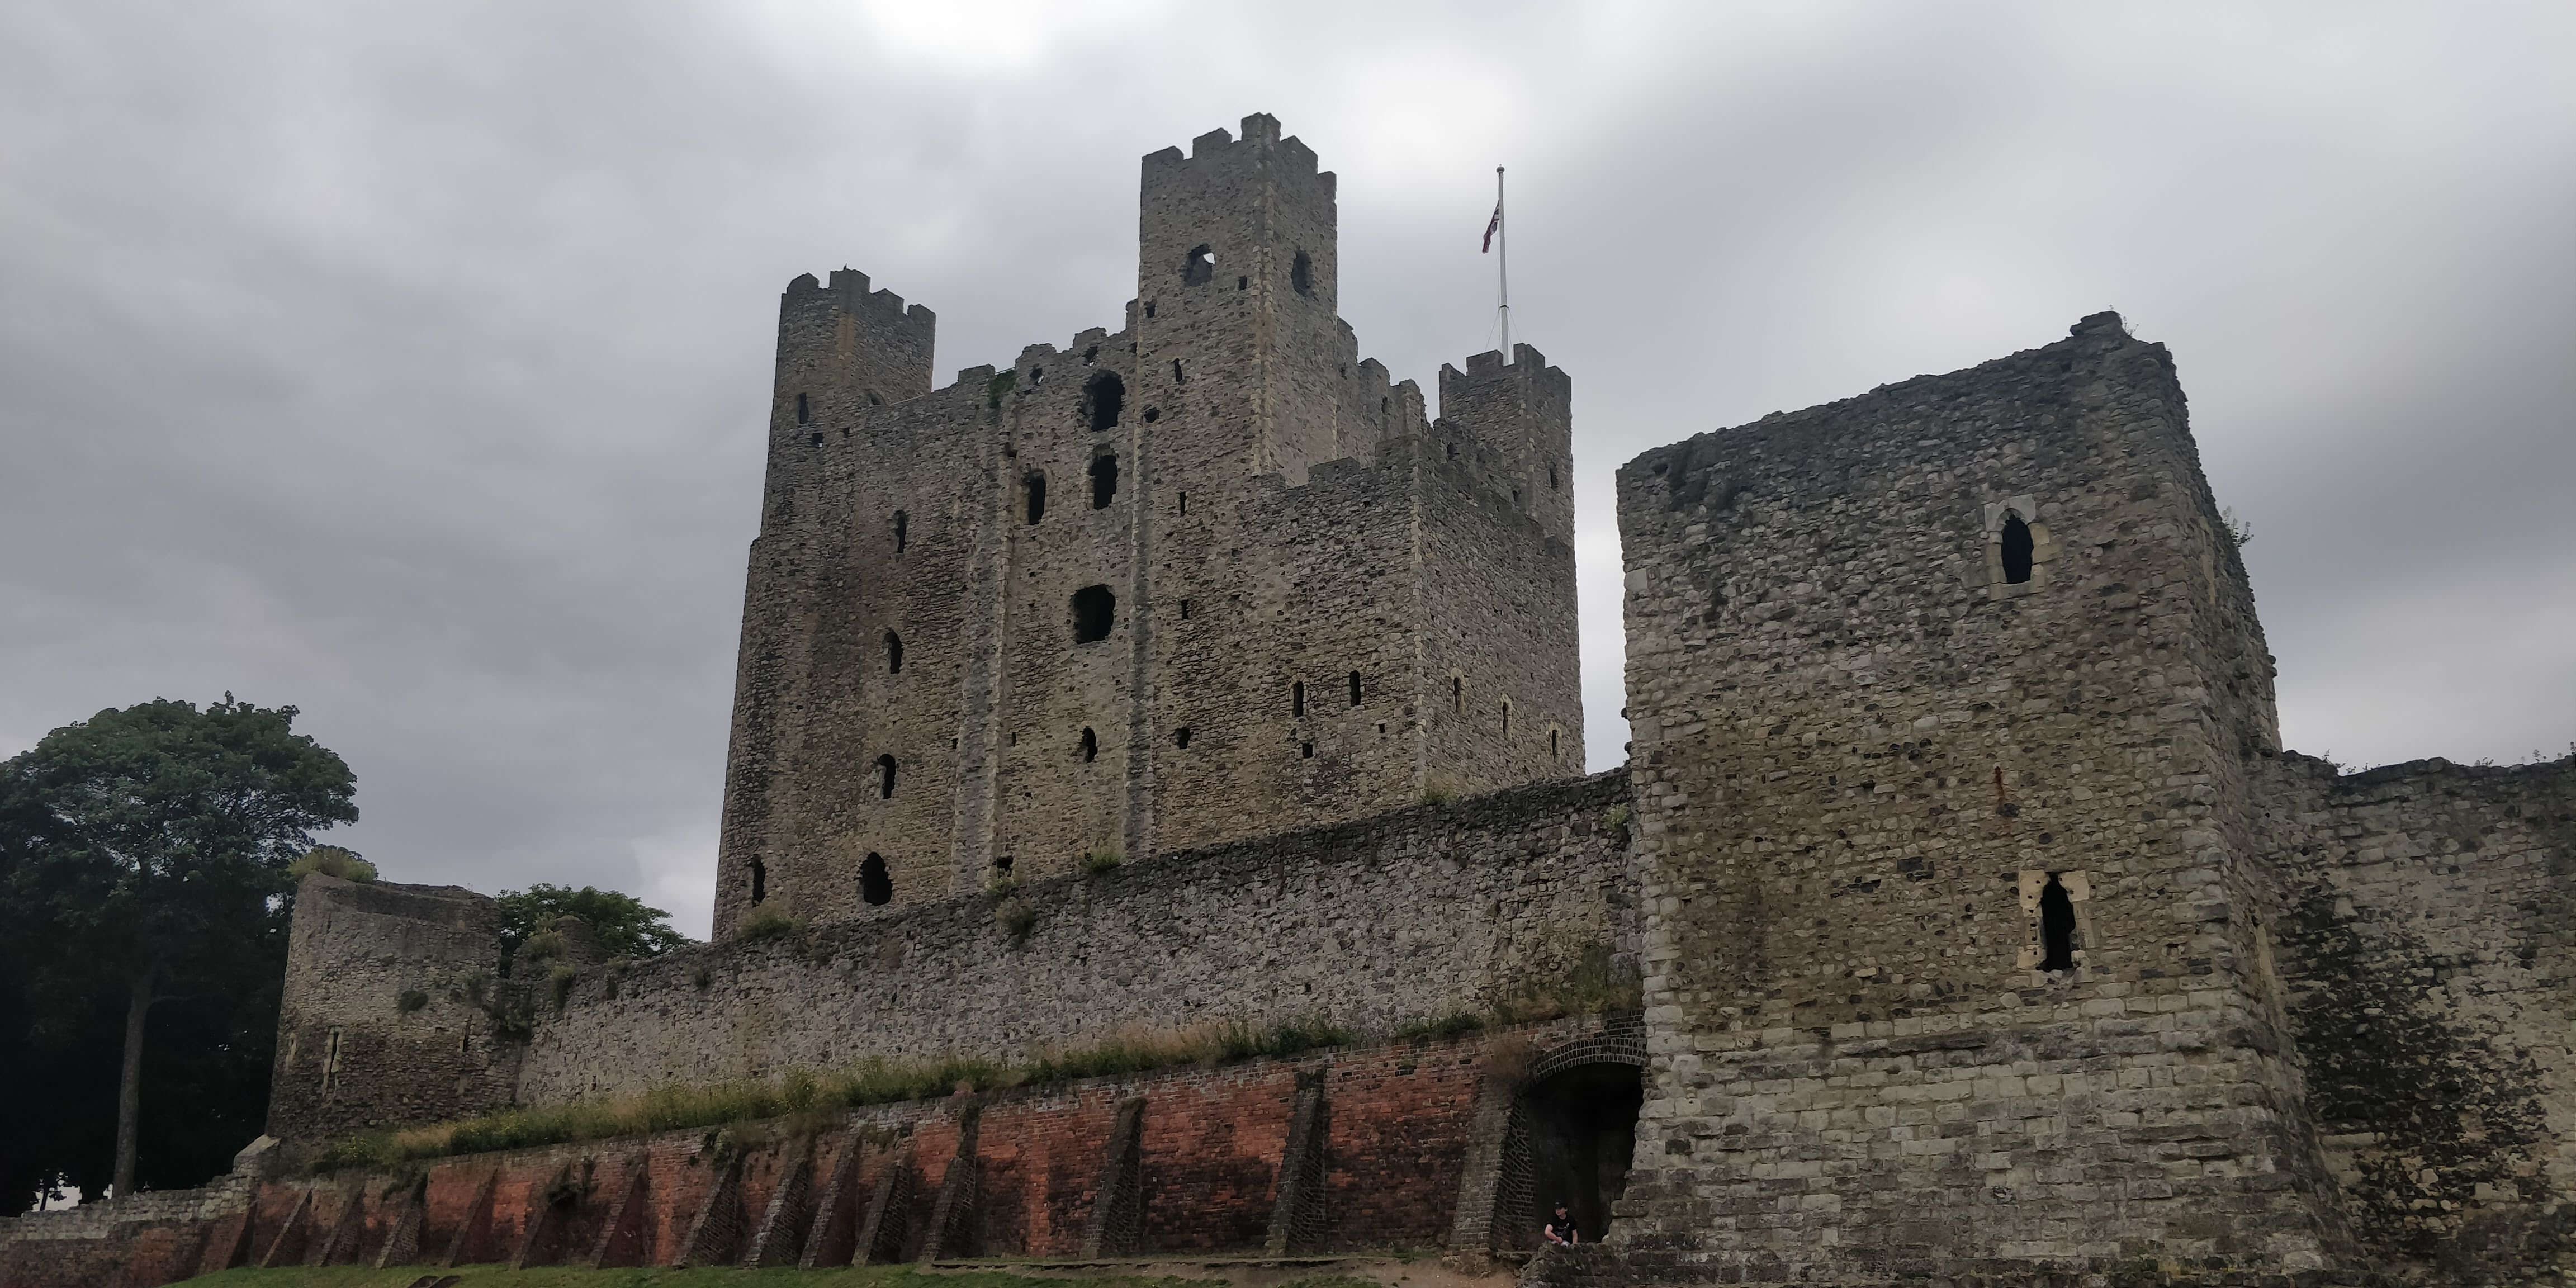 Rochester castle, looking past the wall towards the keep.